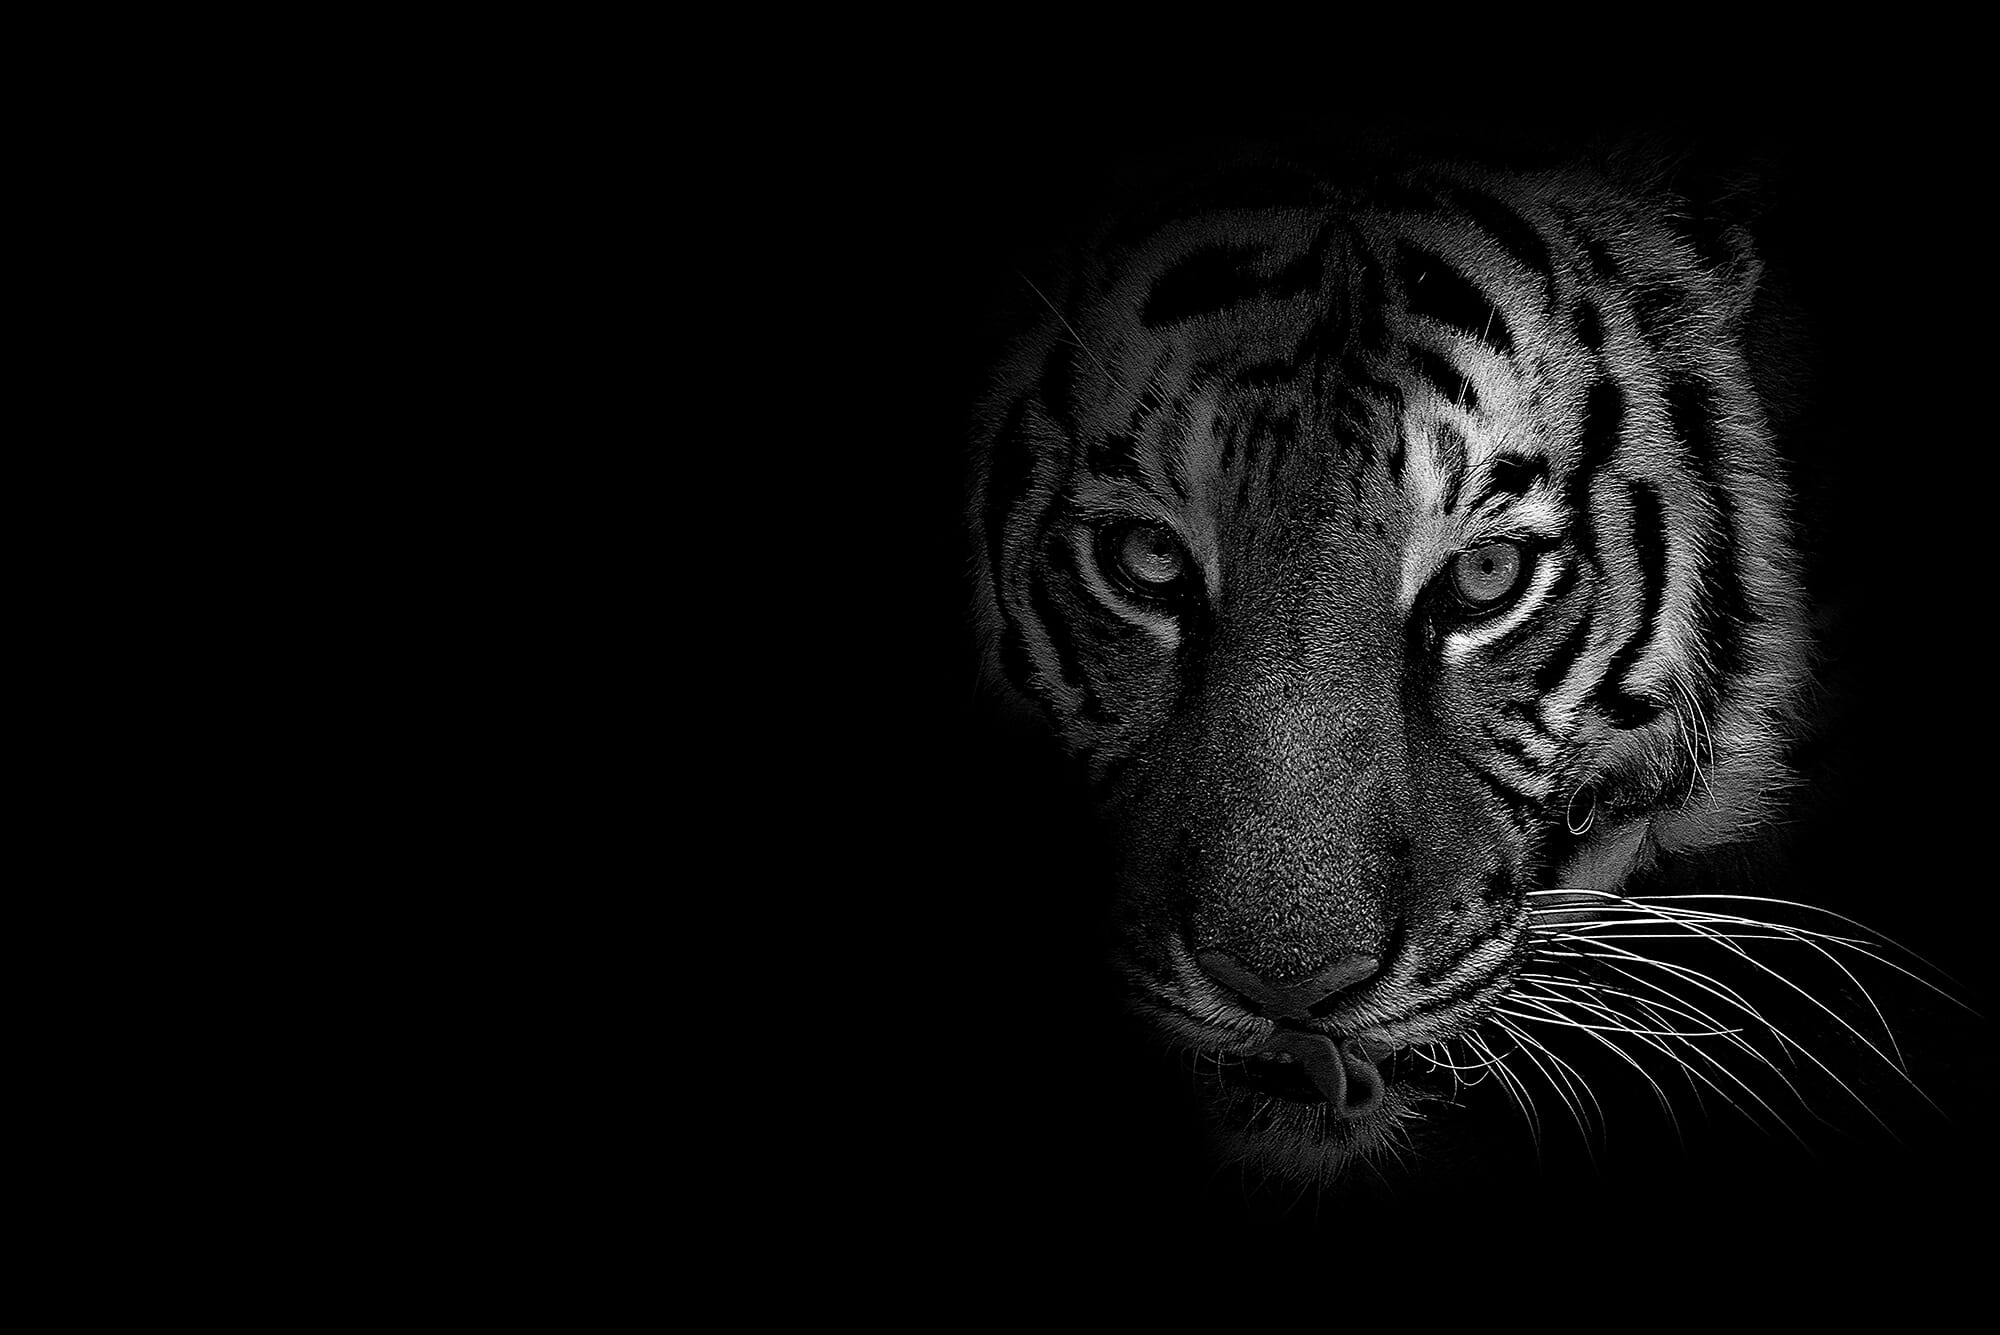 tiger dark big cat stripes whiskers mouth teeth wild animal low key shadows